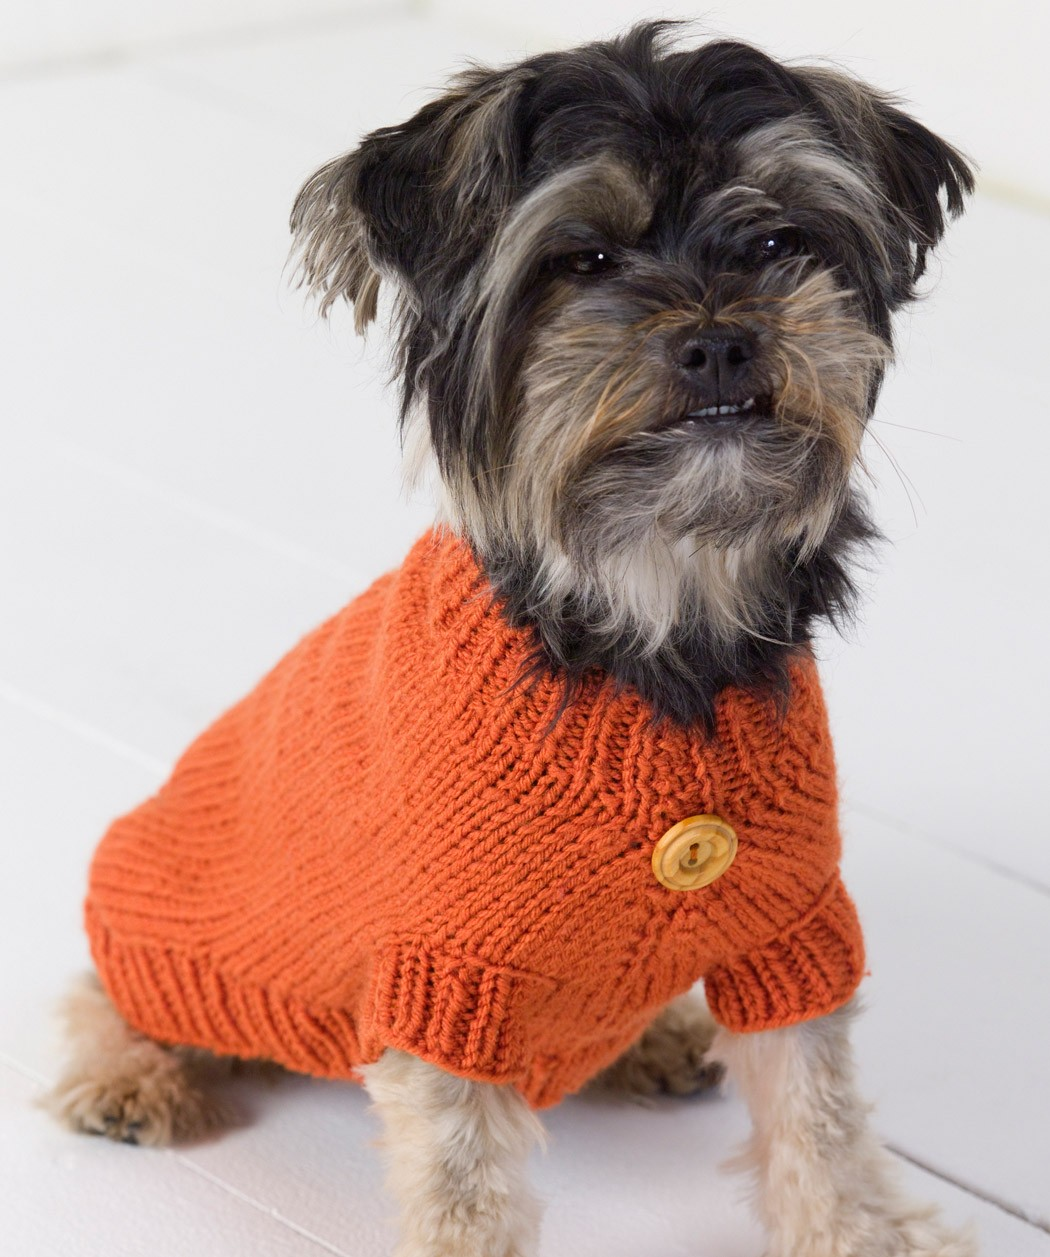 Knitted Patterns For Dog Sweaters : Dog Sweater Knitting Pattern Cute Small Dog Sweater Dog Breeds Picture